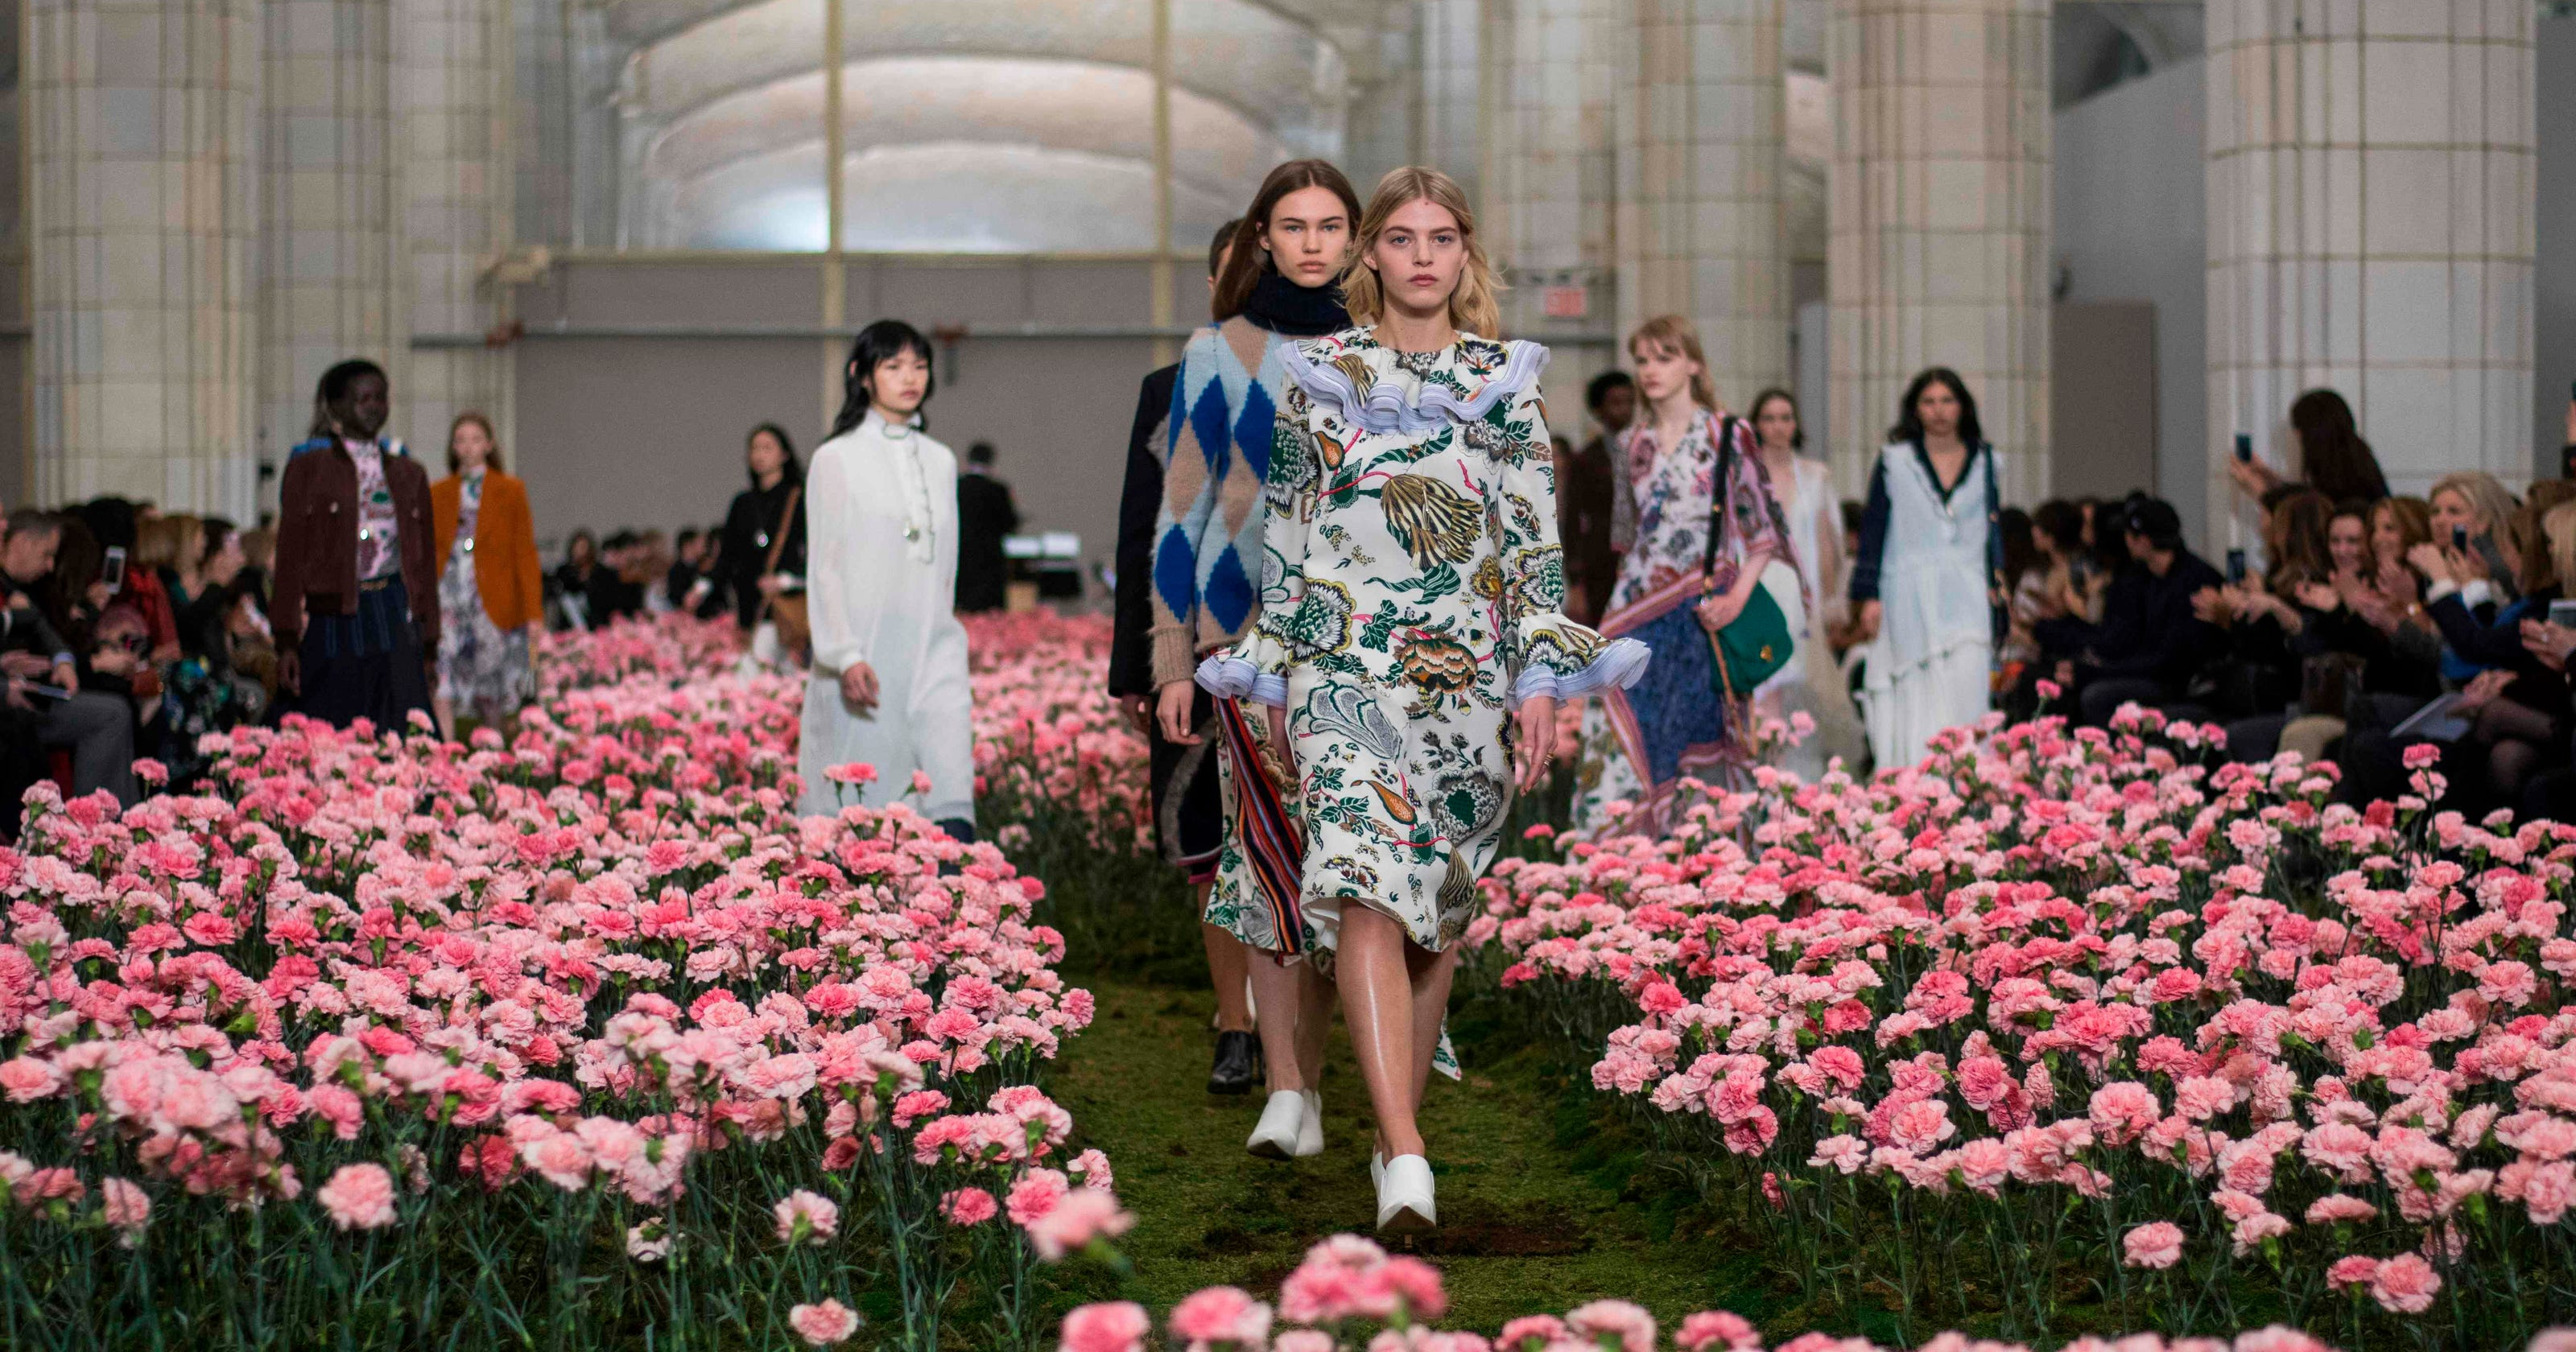 Tory Burch's Fashion Week show was fit for Duchess Kate